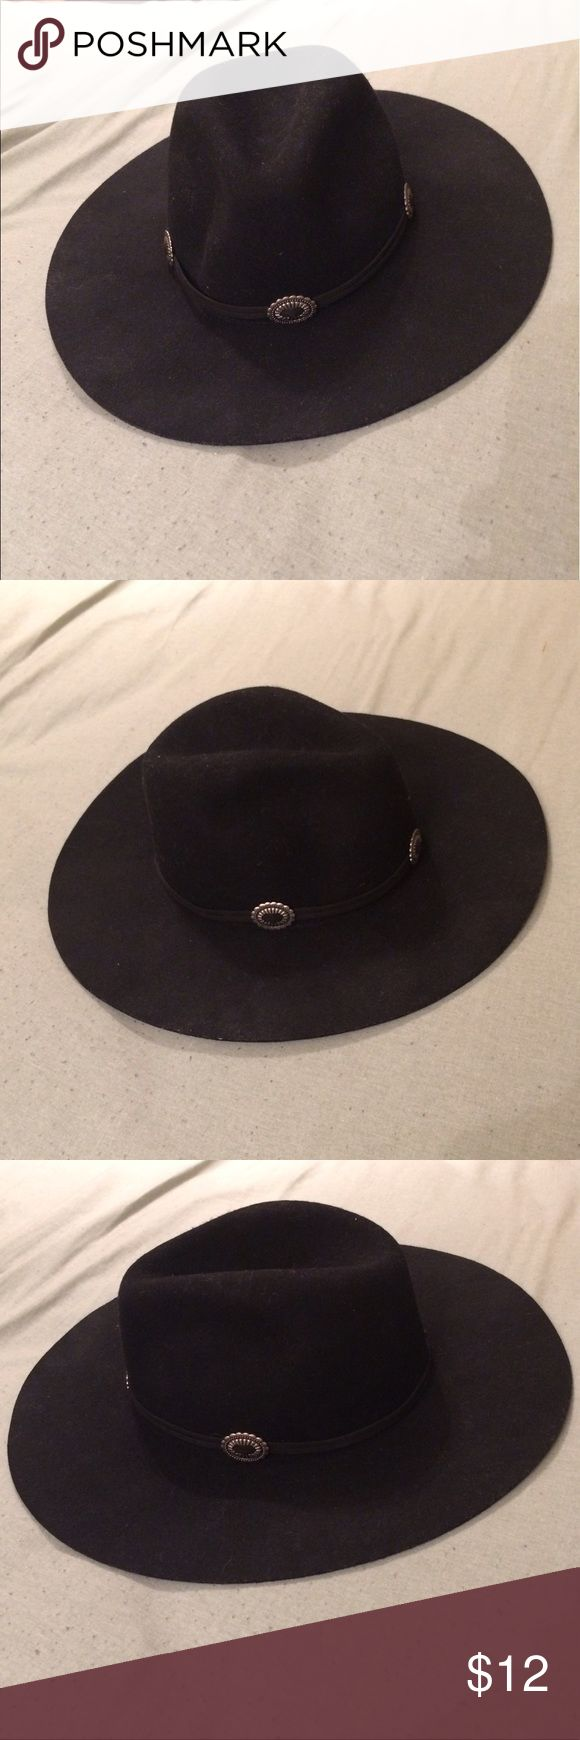 Black Wool Hat - Small NWOT - Cowgirl Inspired Black Wool Hat with Silver Embellishments. Perfect accessory for any outfit ❤️ Size:Small ***Brand Tagged for Exposure*** ModCloth Accessories Hats